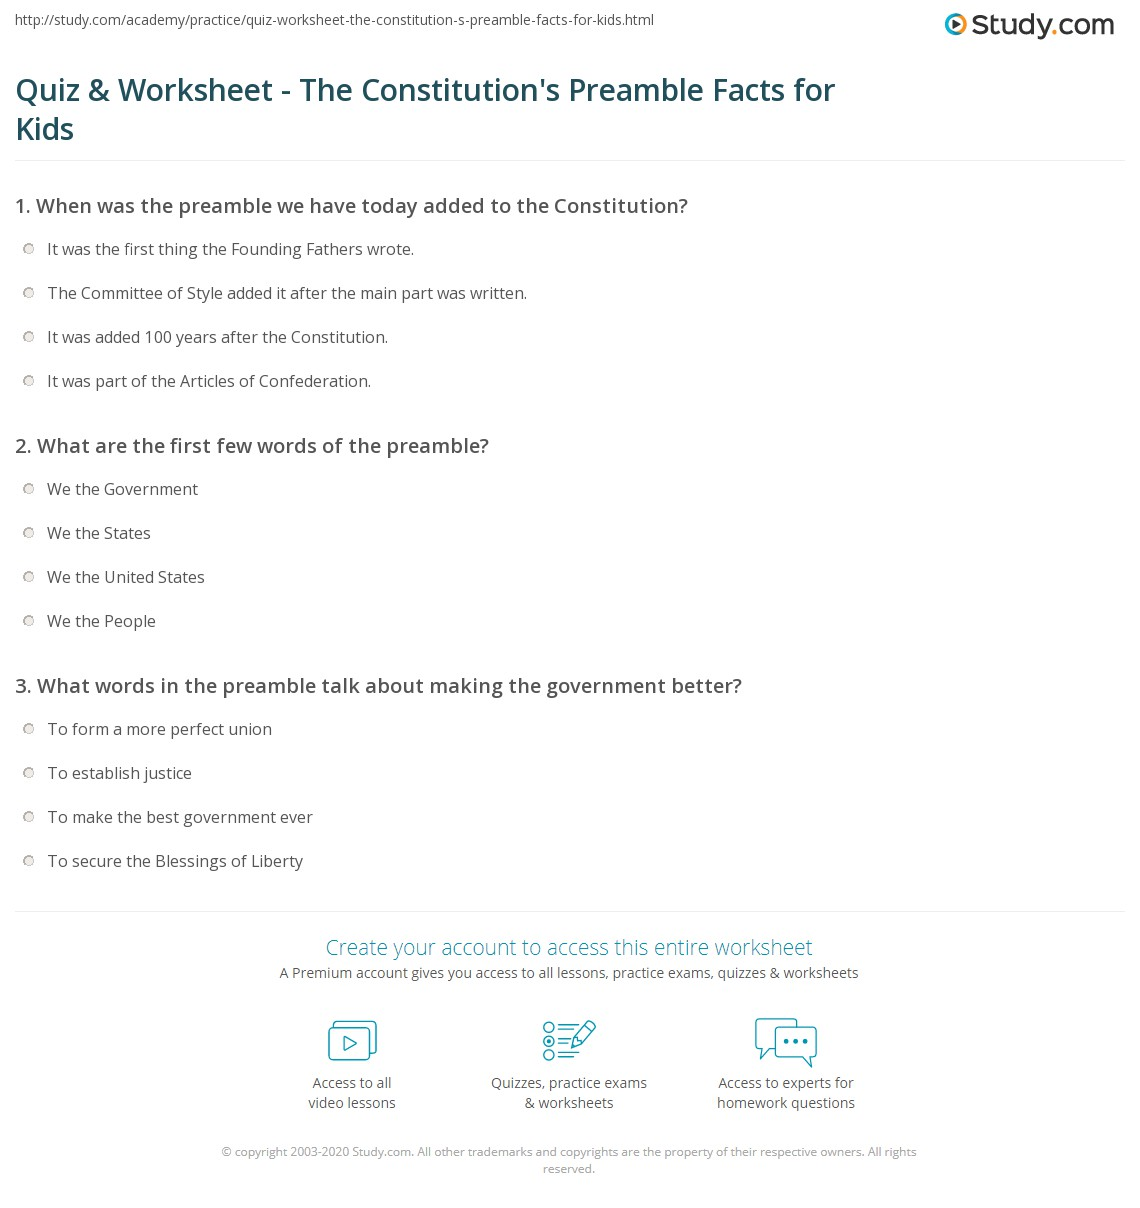 Worksheets Preamble Worksheet quiz worksheet the constitutions preamble facts for kids print to constitution lesson worksheet